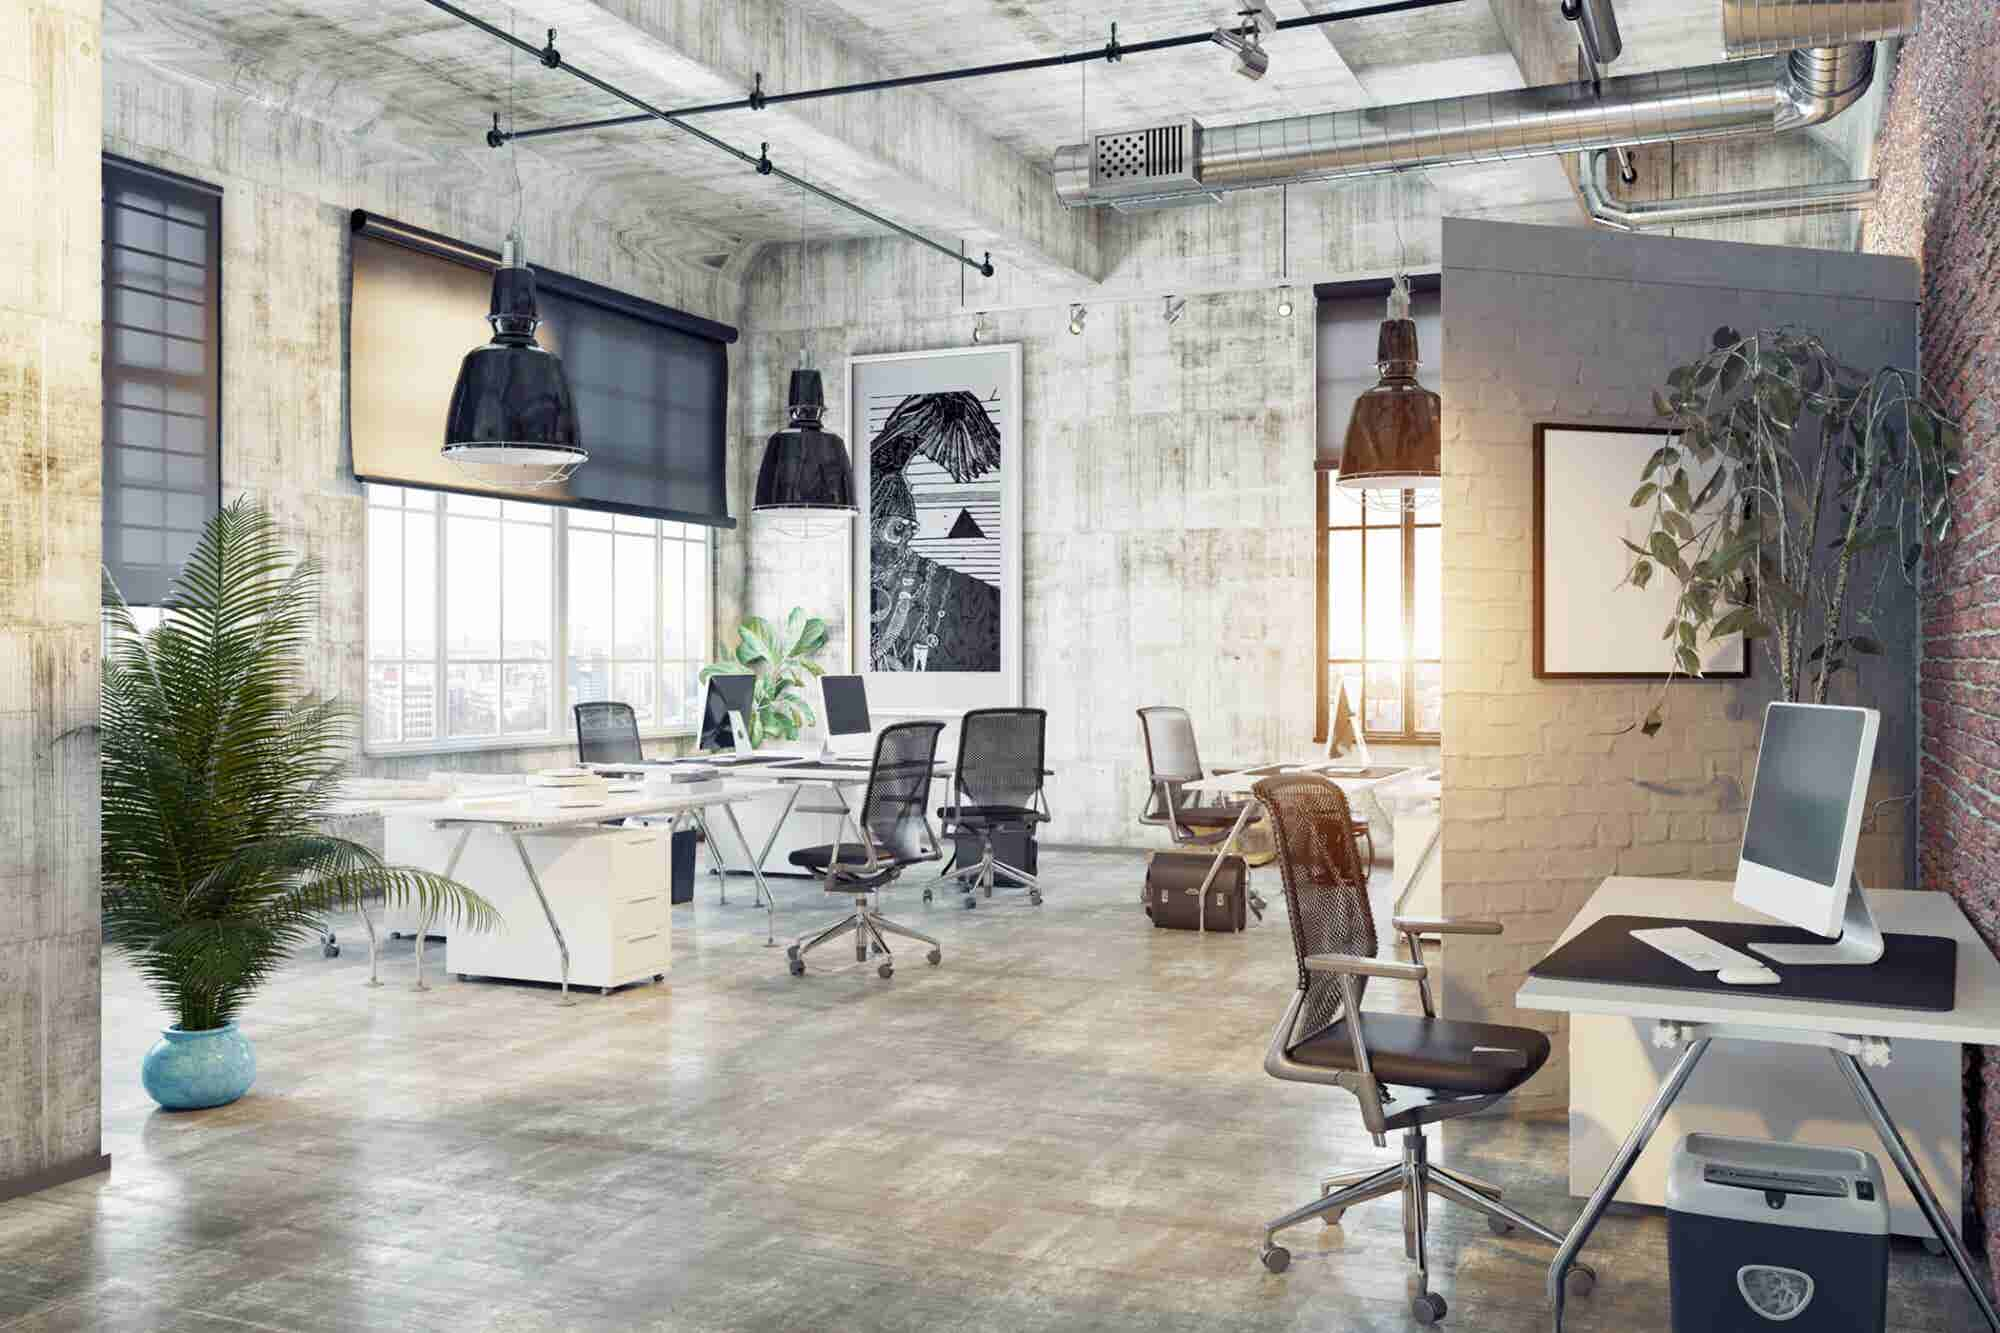 'Virtual Co-Working Spaces' Are Going to Be Part of the Near-Future's Entrepreneurial Lifestyle